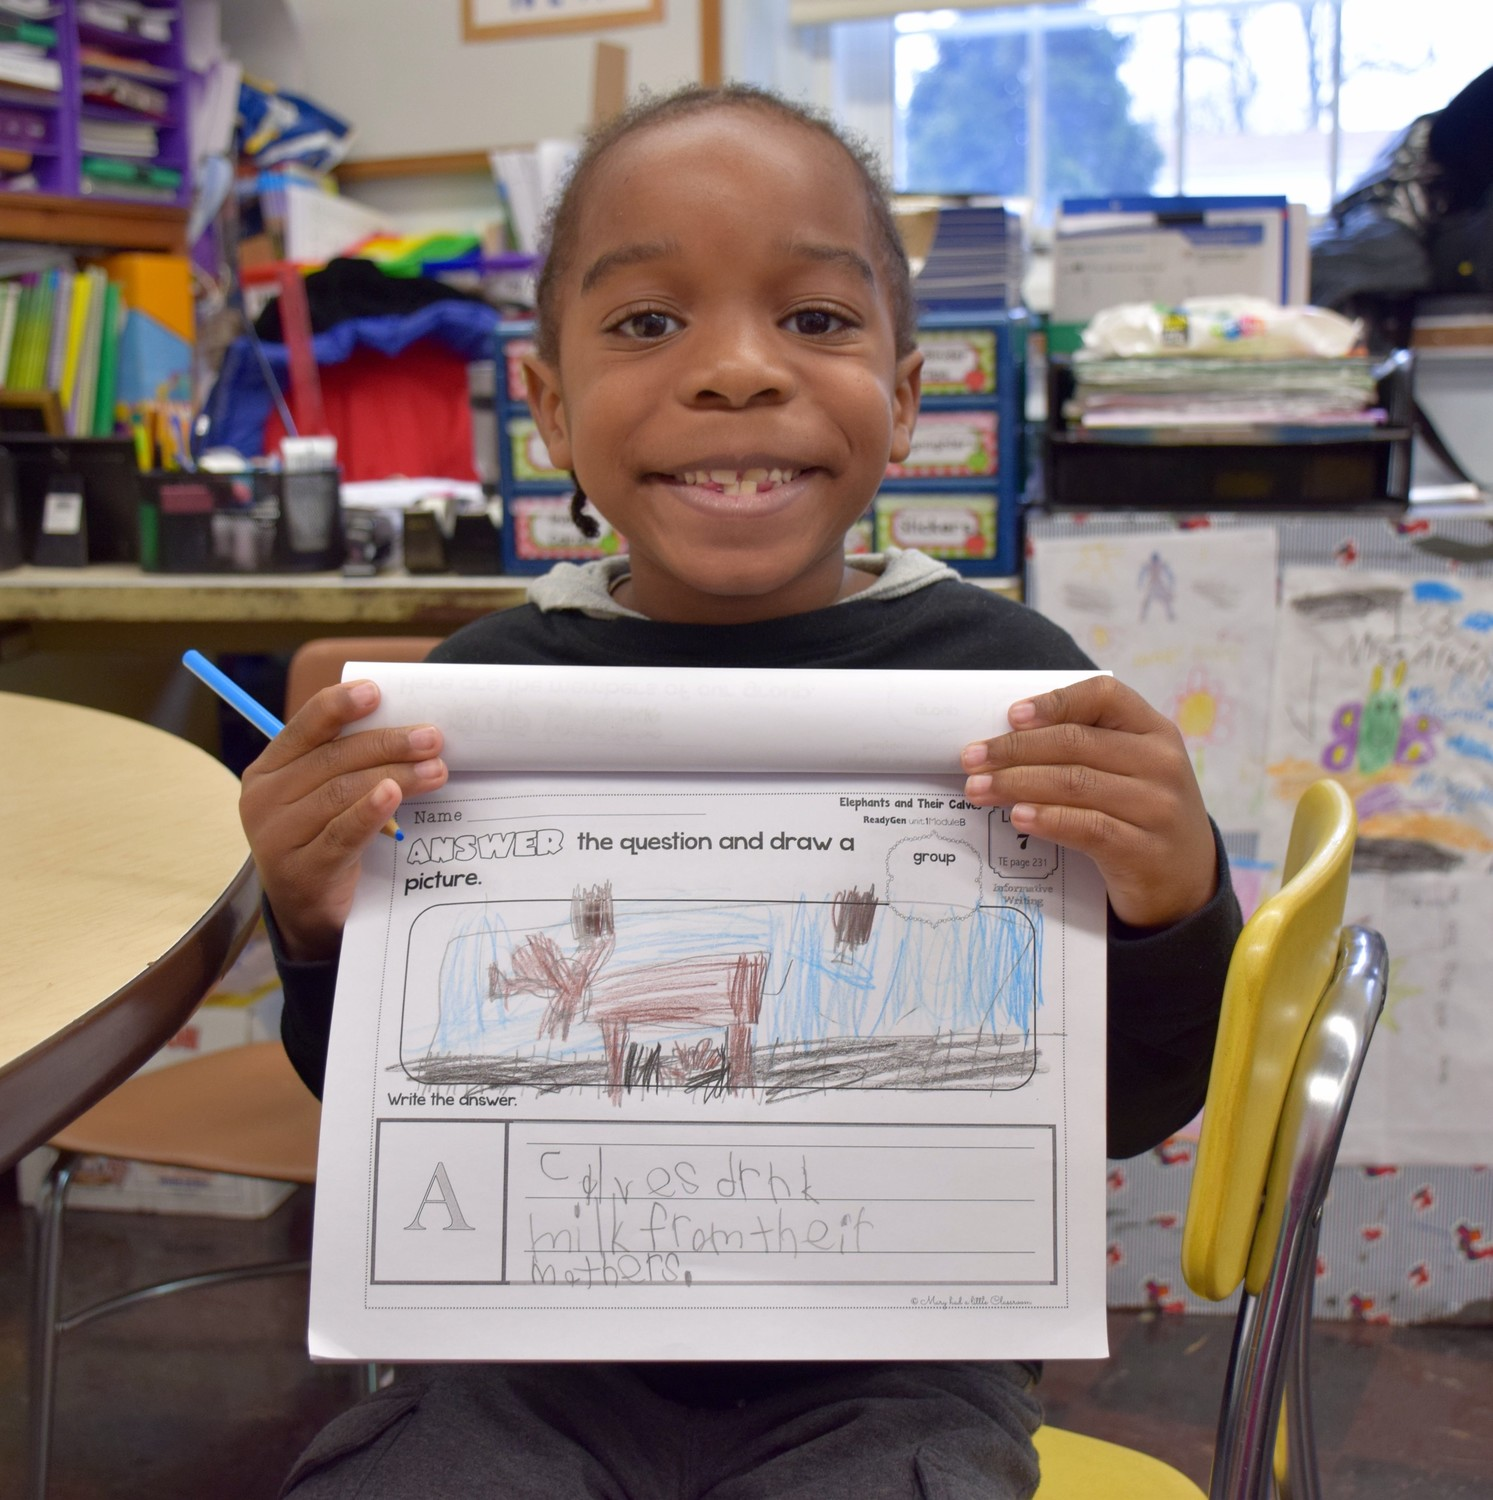 rst-grader Nisovi David showed off the 